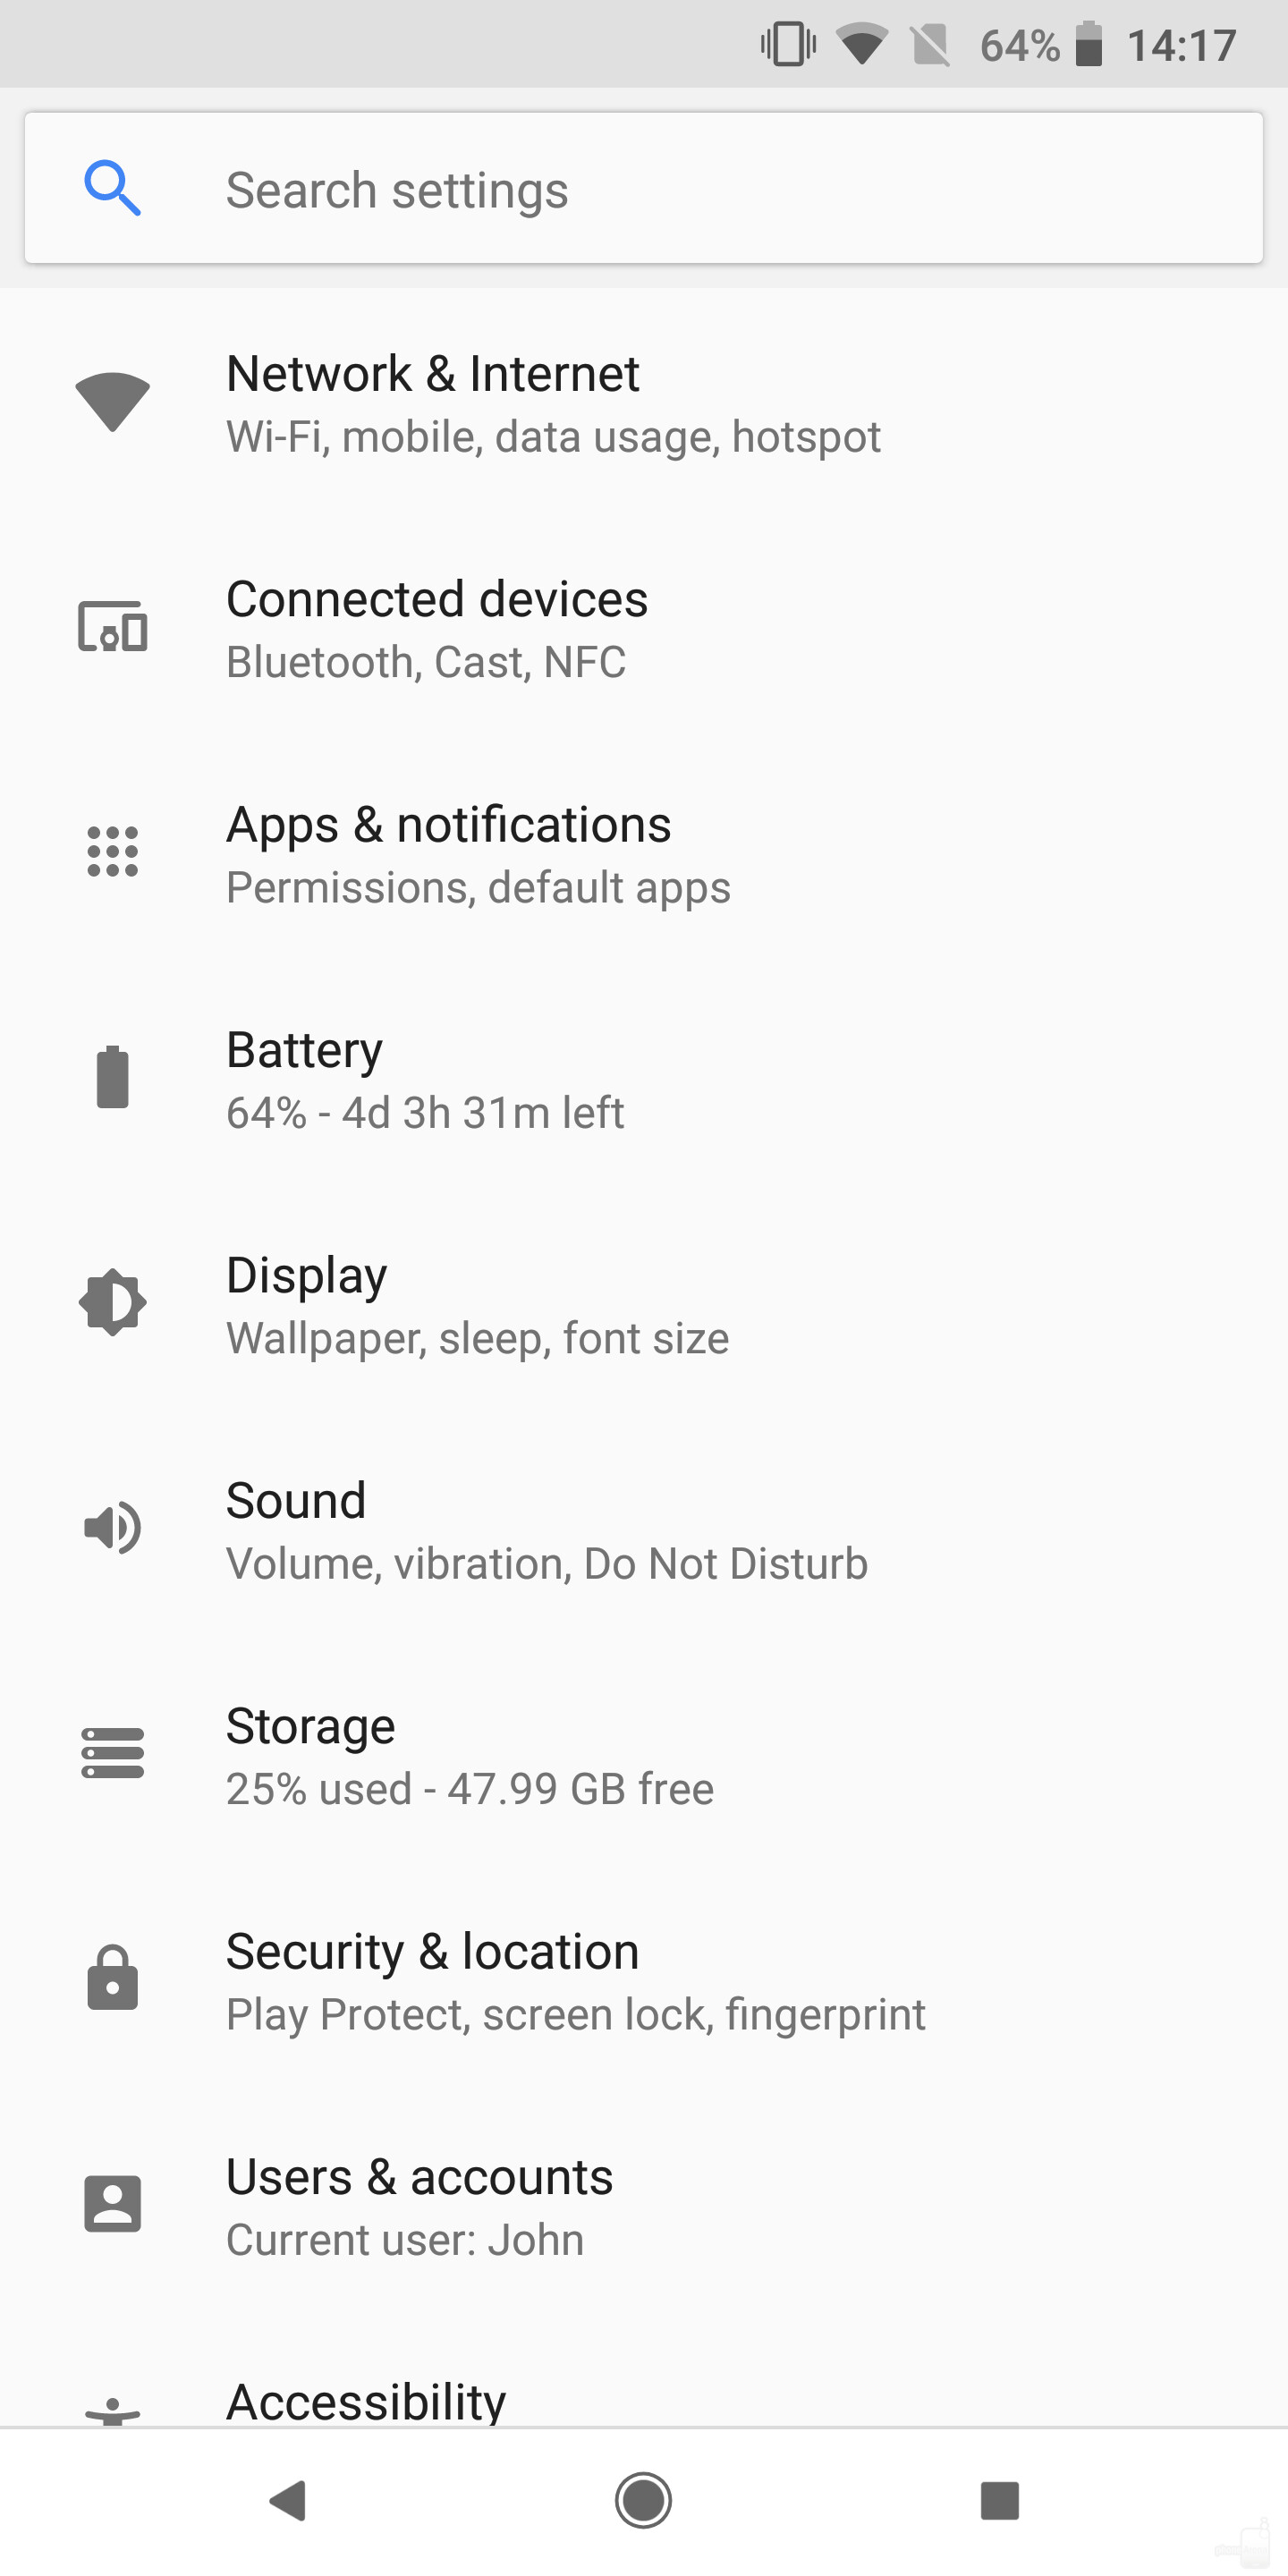 Android 9 Pie review: all new features - PhoneArena